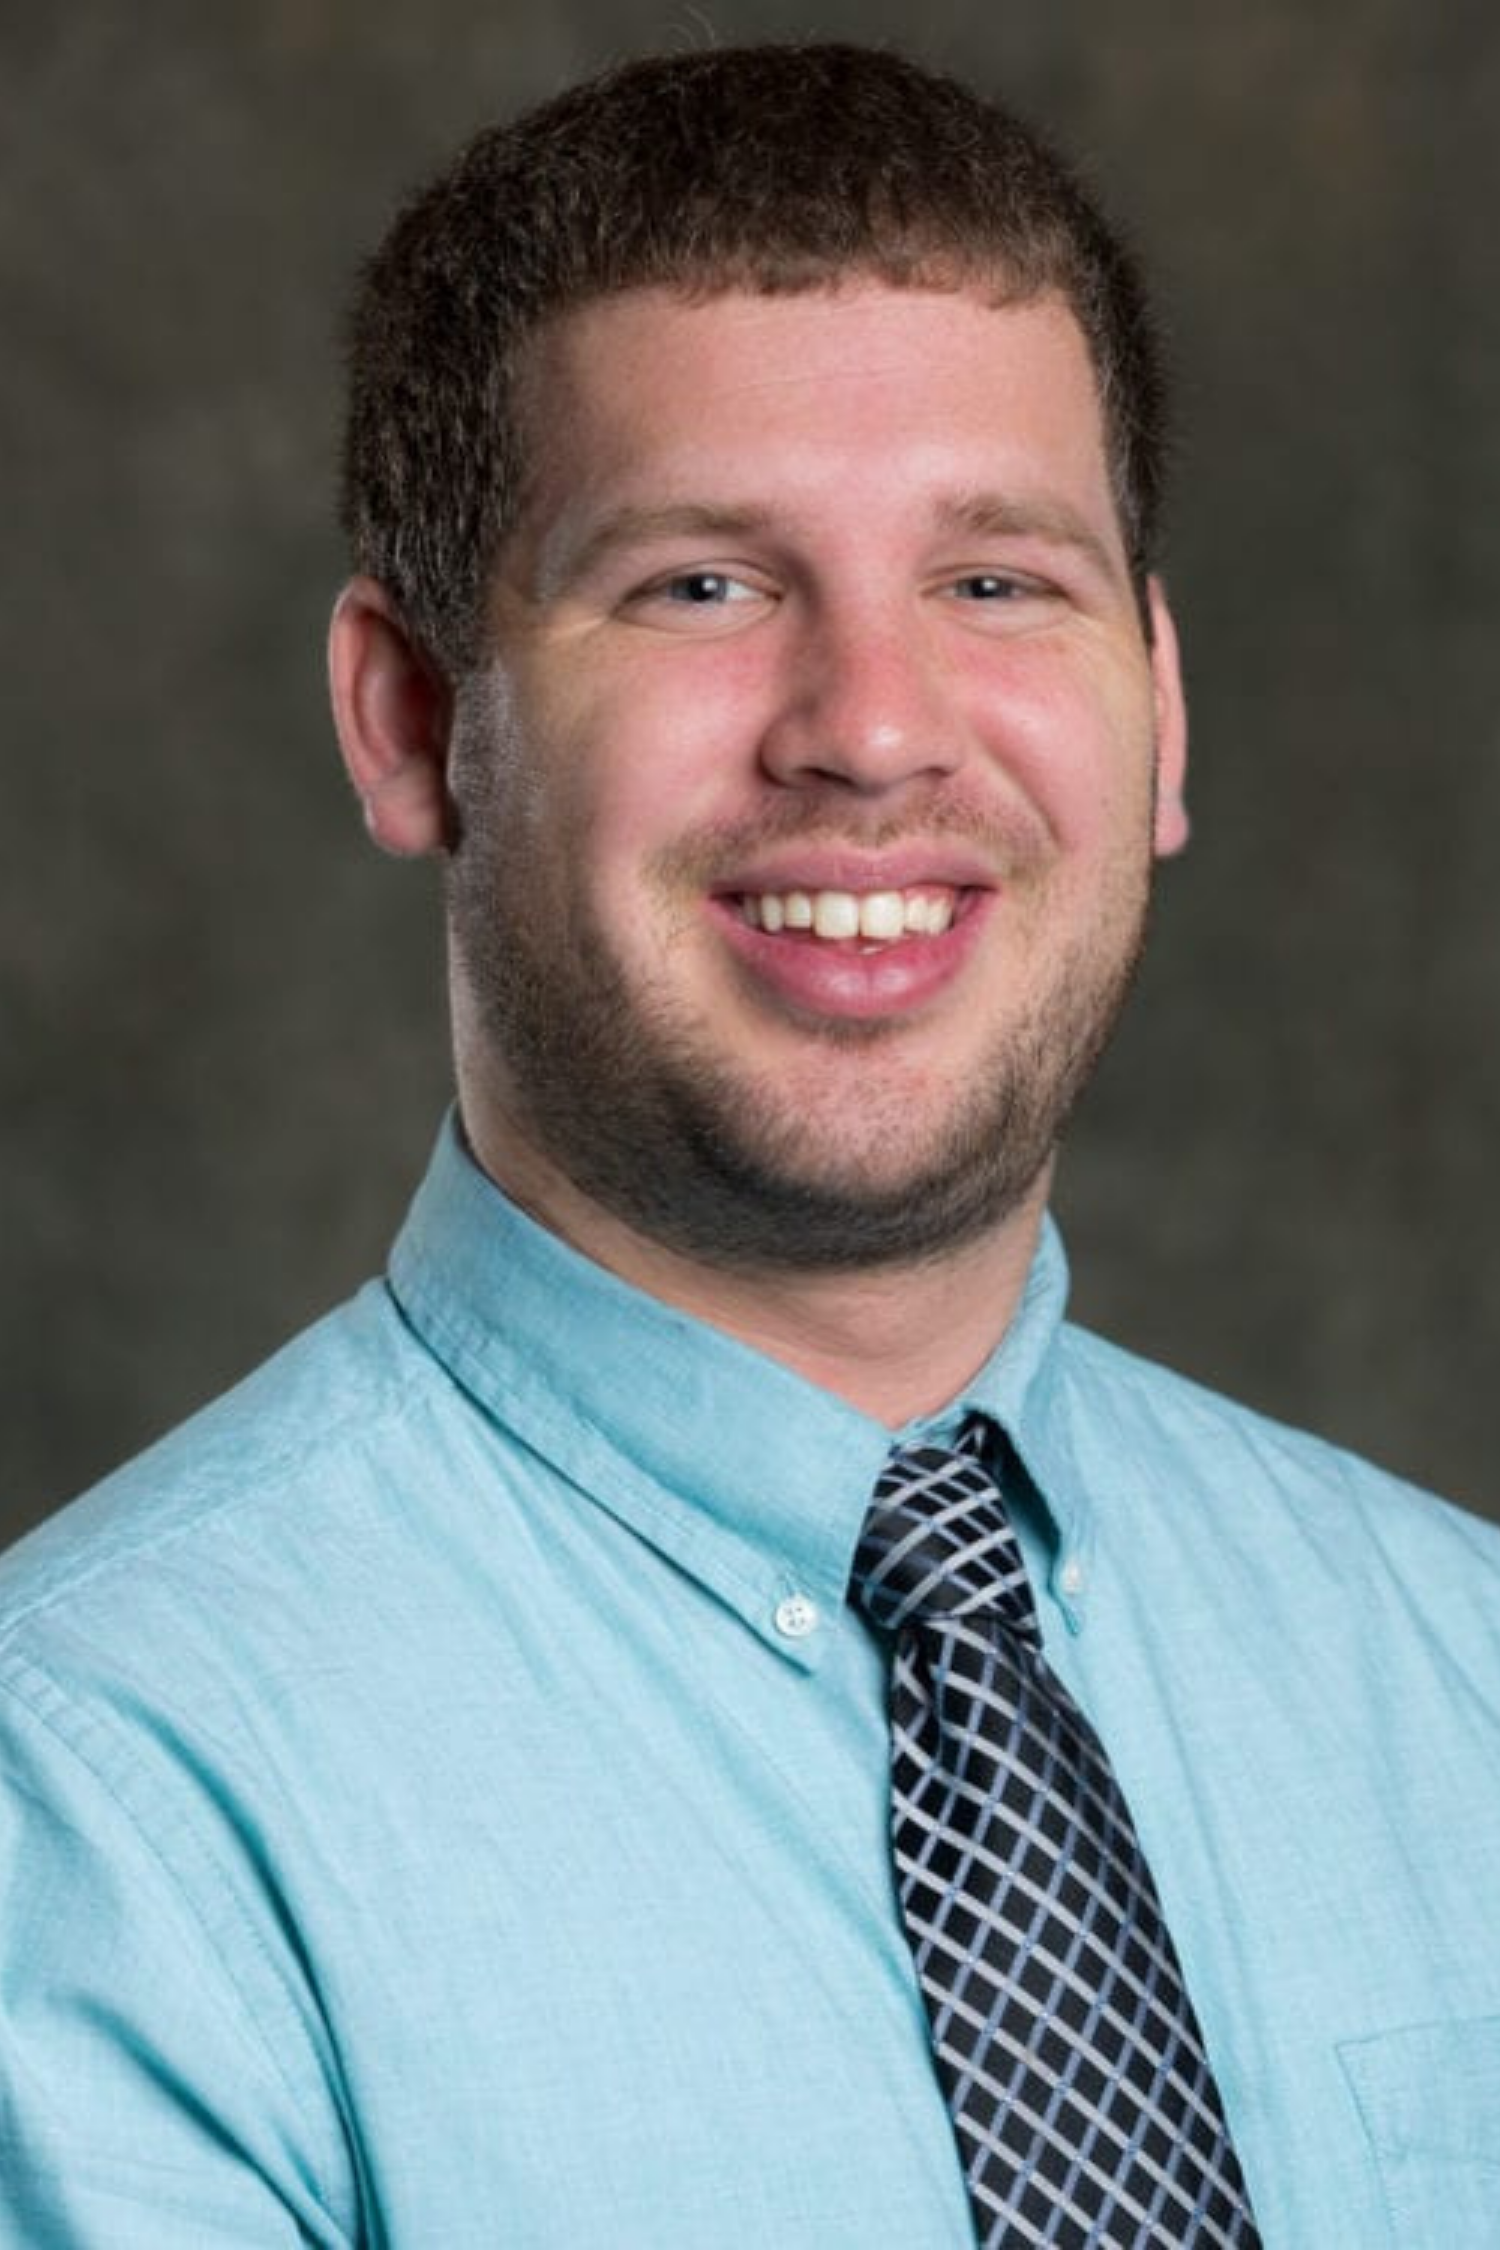 Nicholas Sommers, Physician Assistant